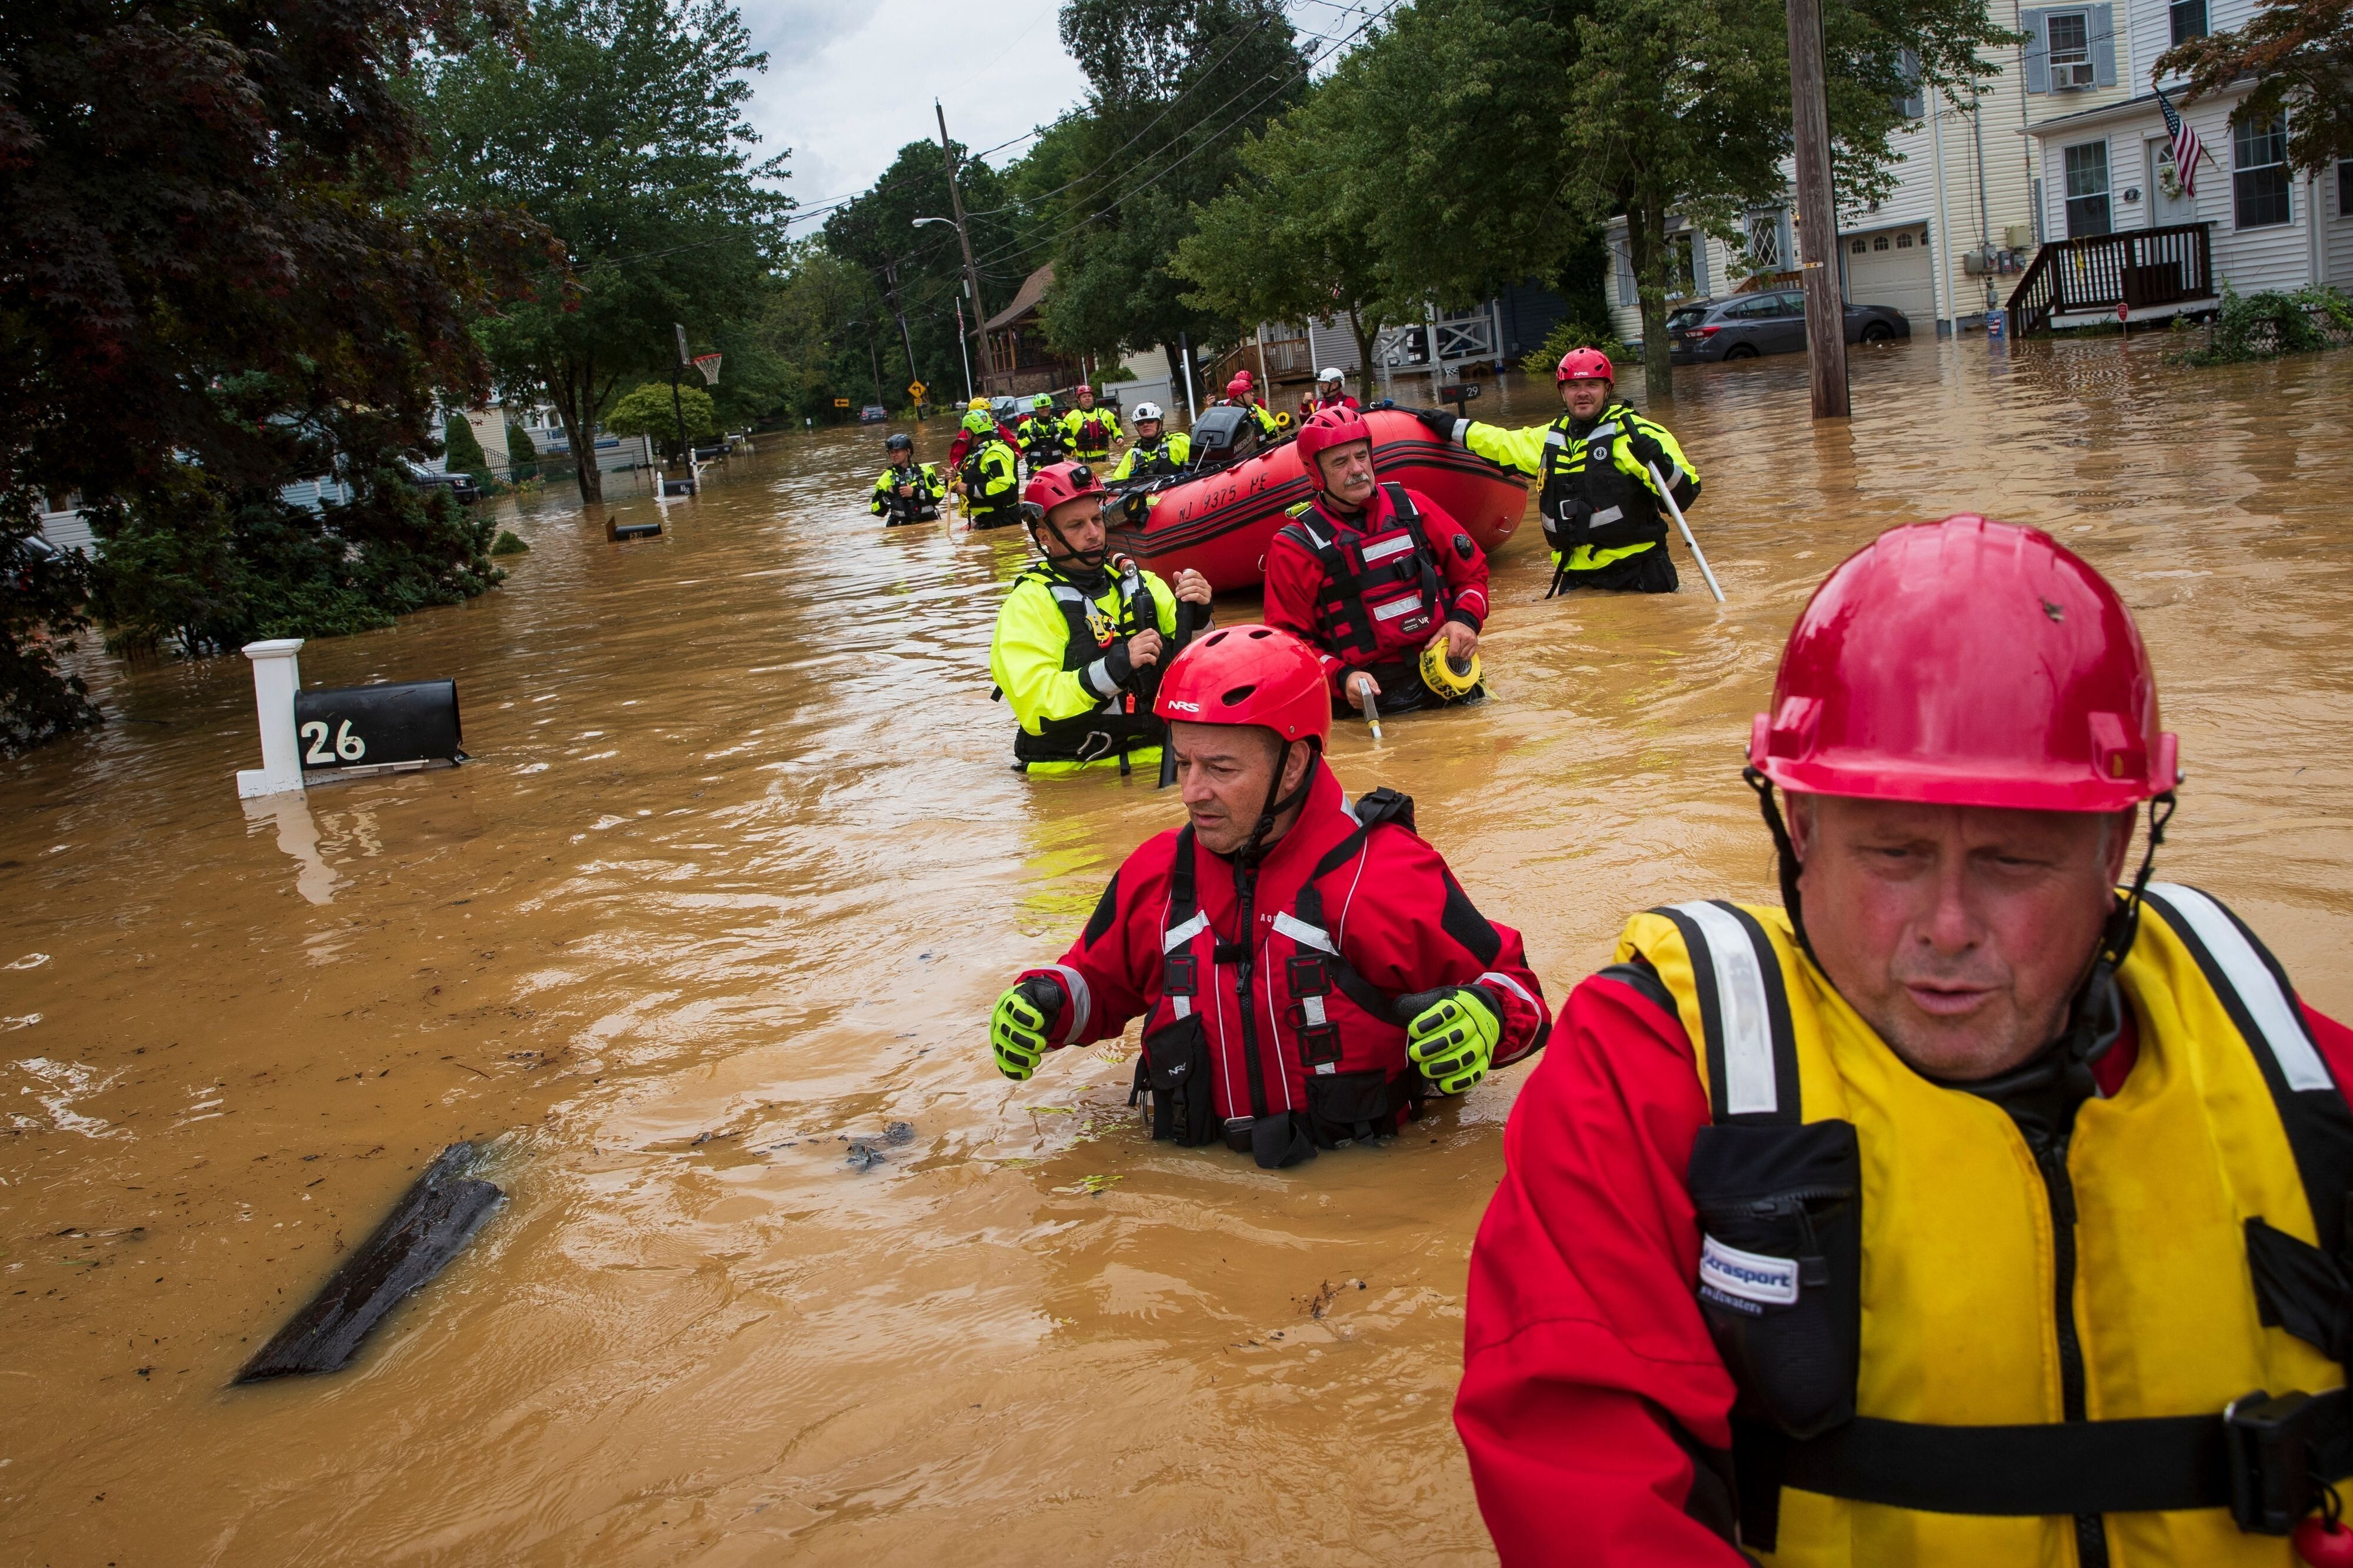 Members of the New Market Volunteer Fire Company perform a secondary search during an evacuation effort following a flash flo